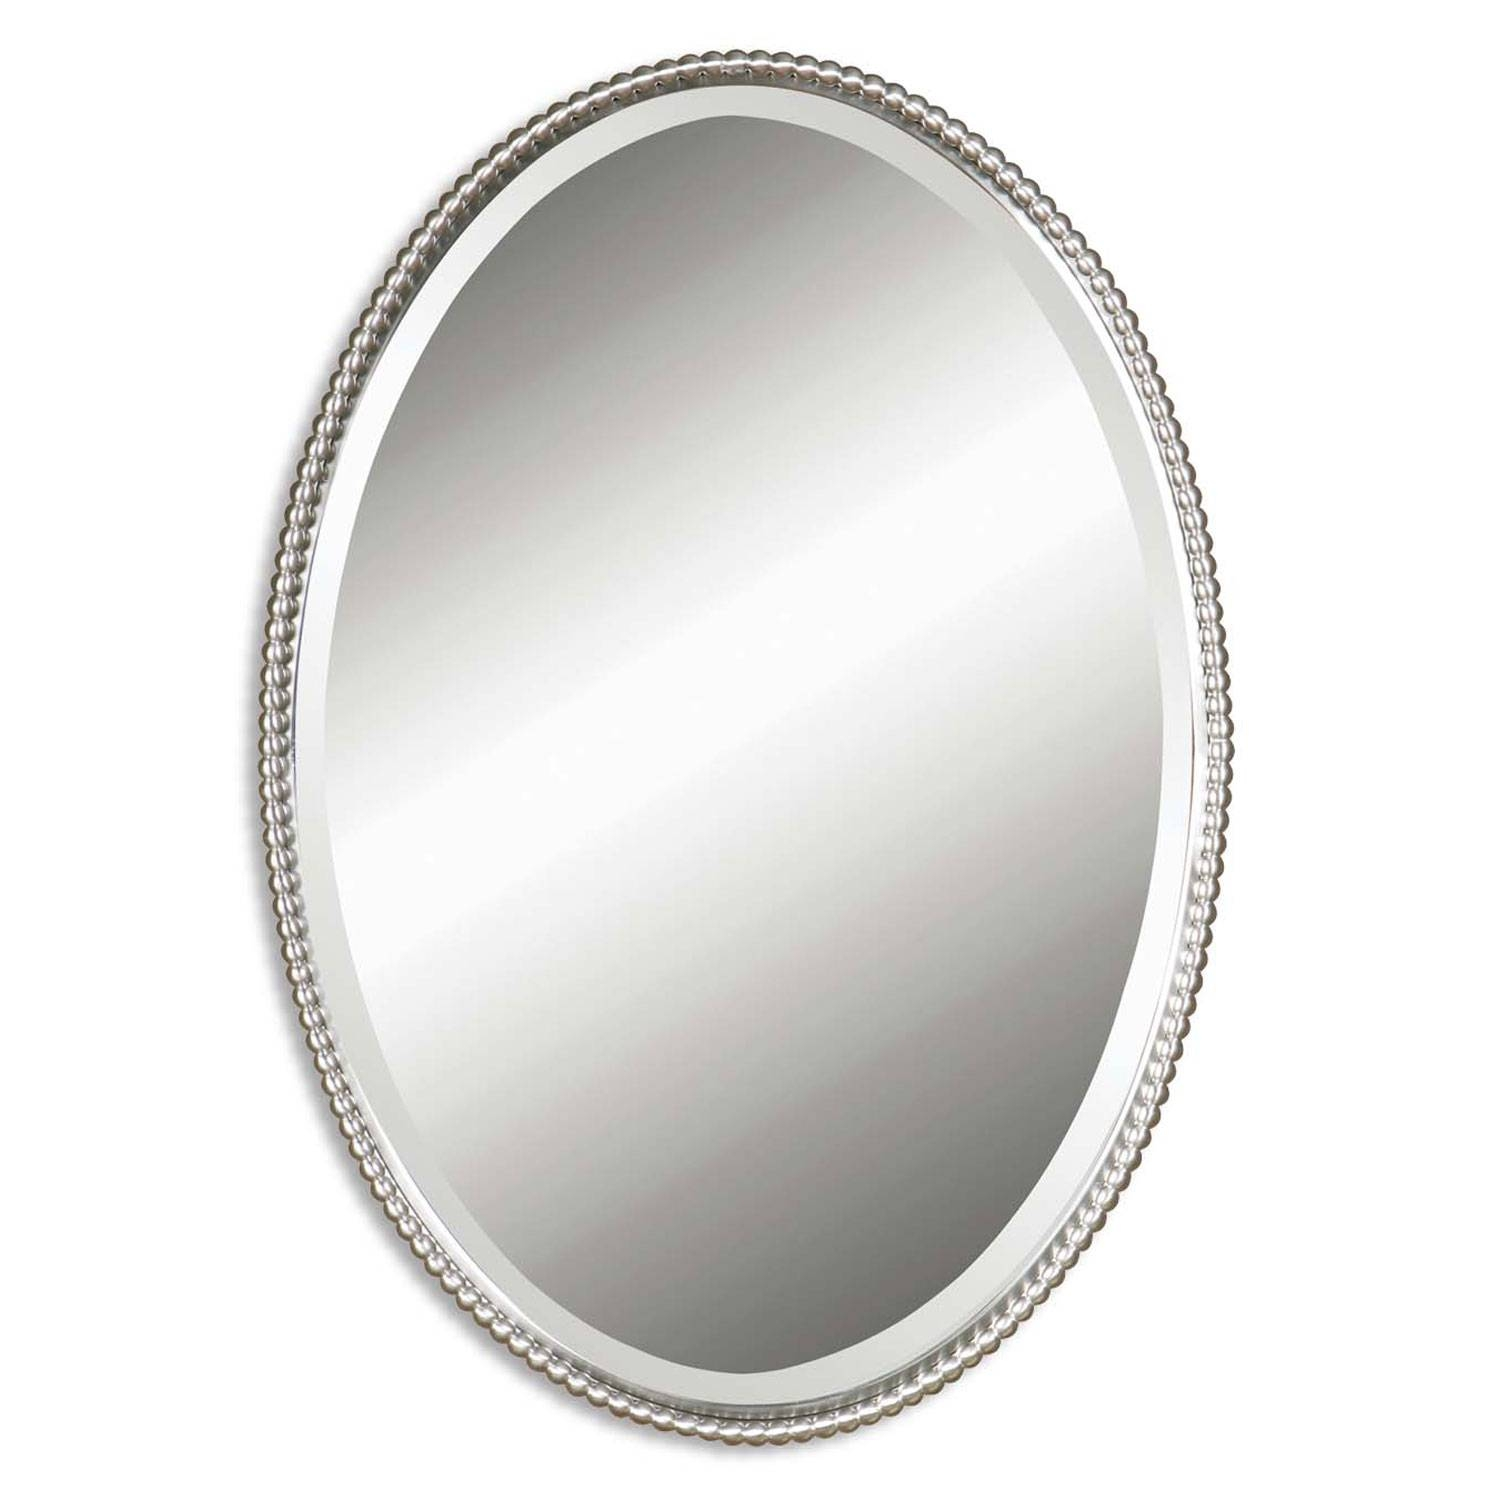 Nickel Brushed Mirrors | Bellacor regarding Odd Shaped Mirrors (Image 14 of 25)